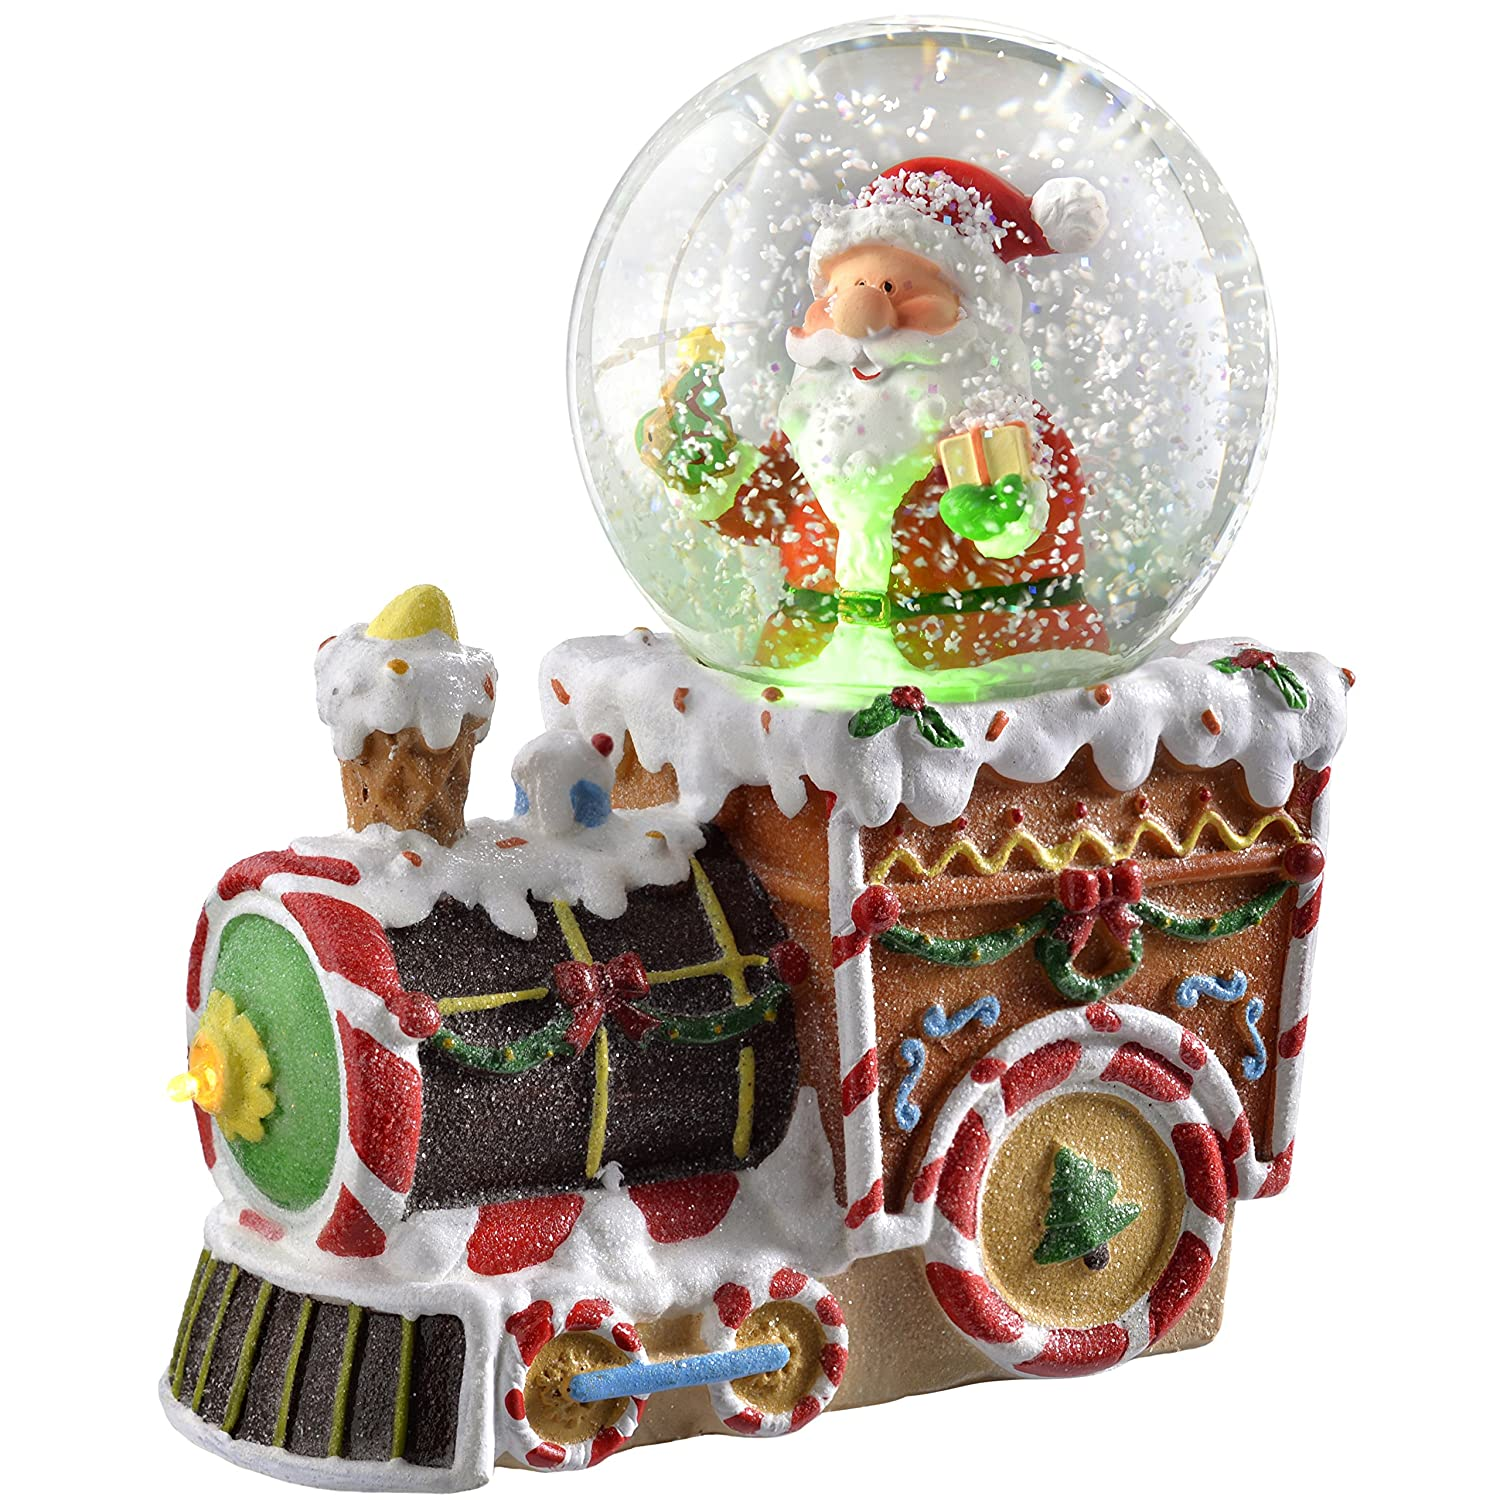 WeRChristmas Santa on Train Colour Changing Snow Globe, 16 cm - Multi-Colour WRC-7299